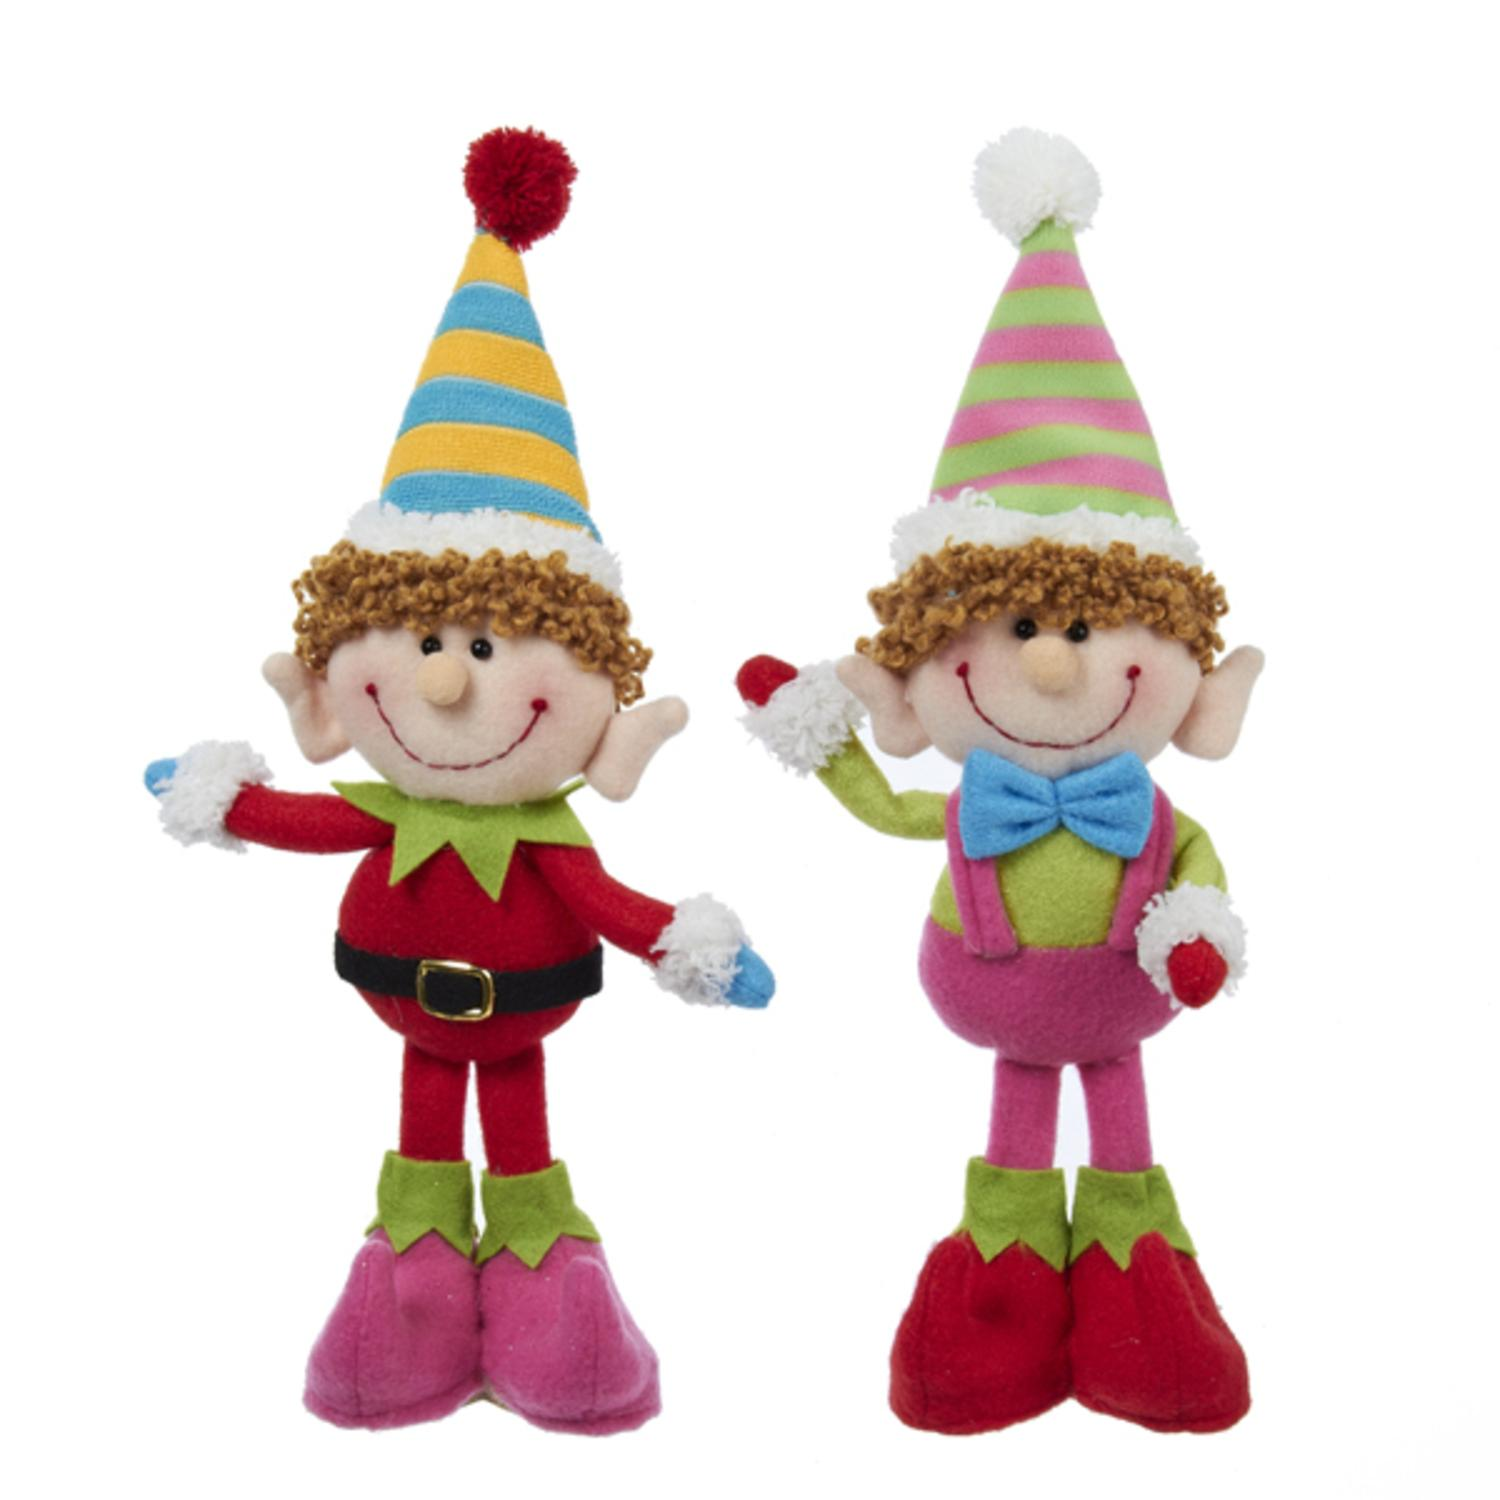 Club Pack of 12 Plush Standing Elf Christmas Decorations 9""